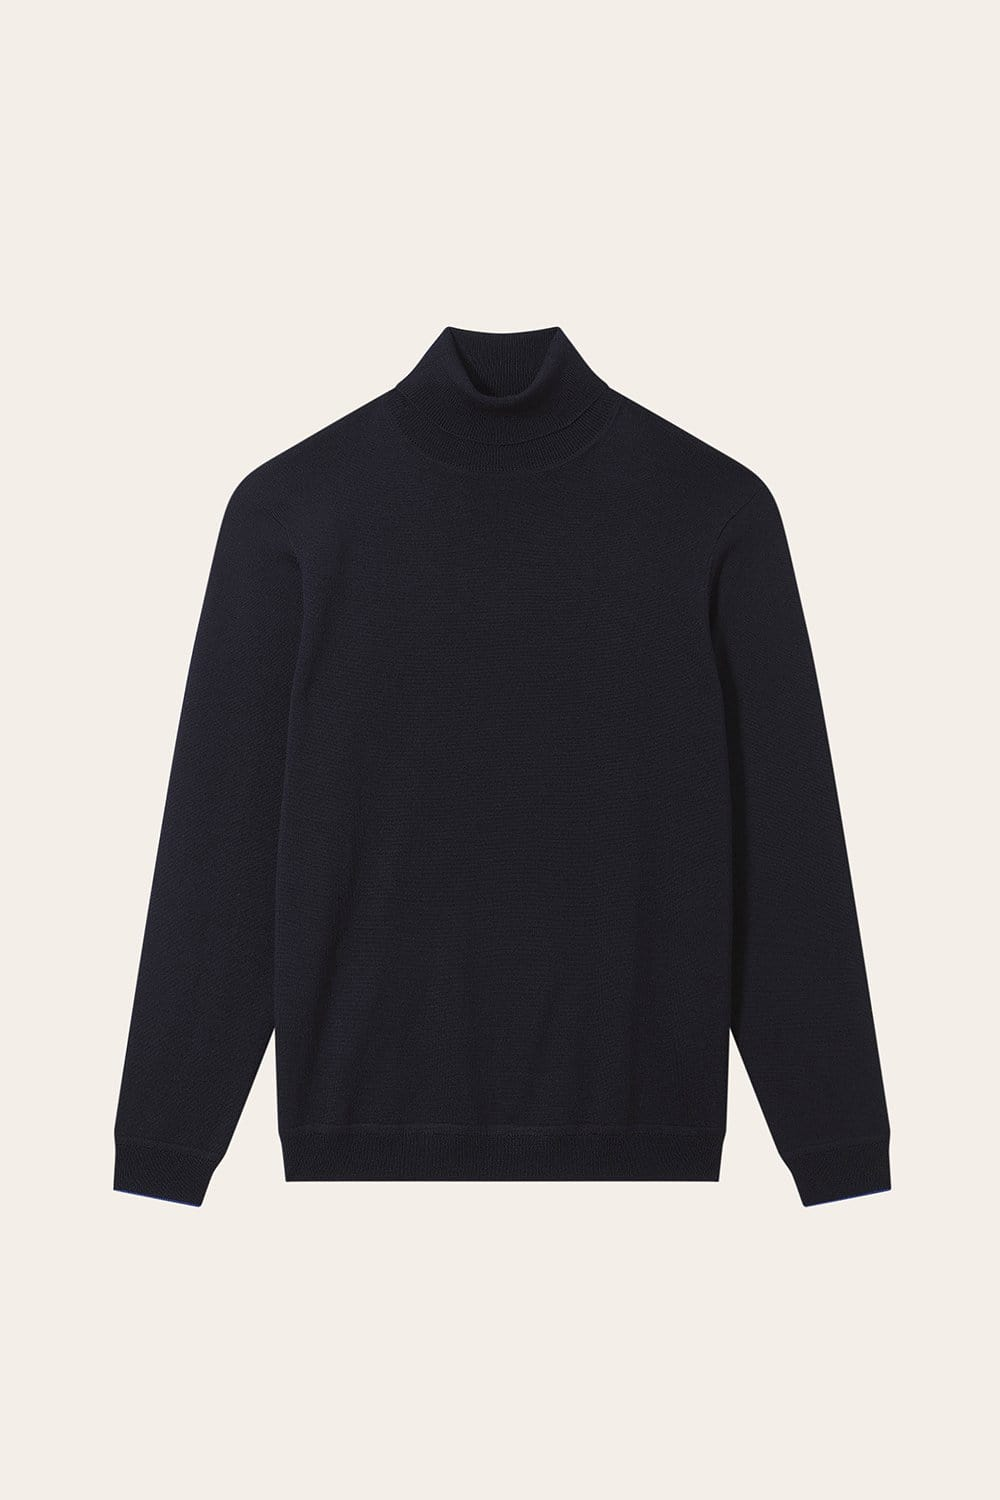 Turtle Sweater - Navy